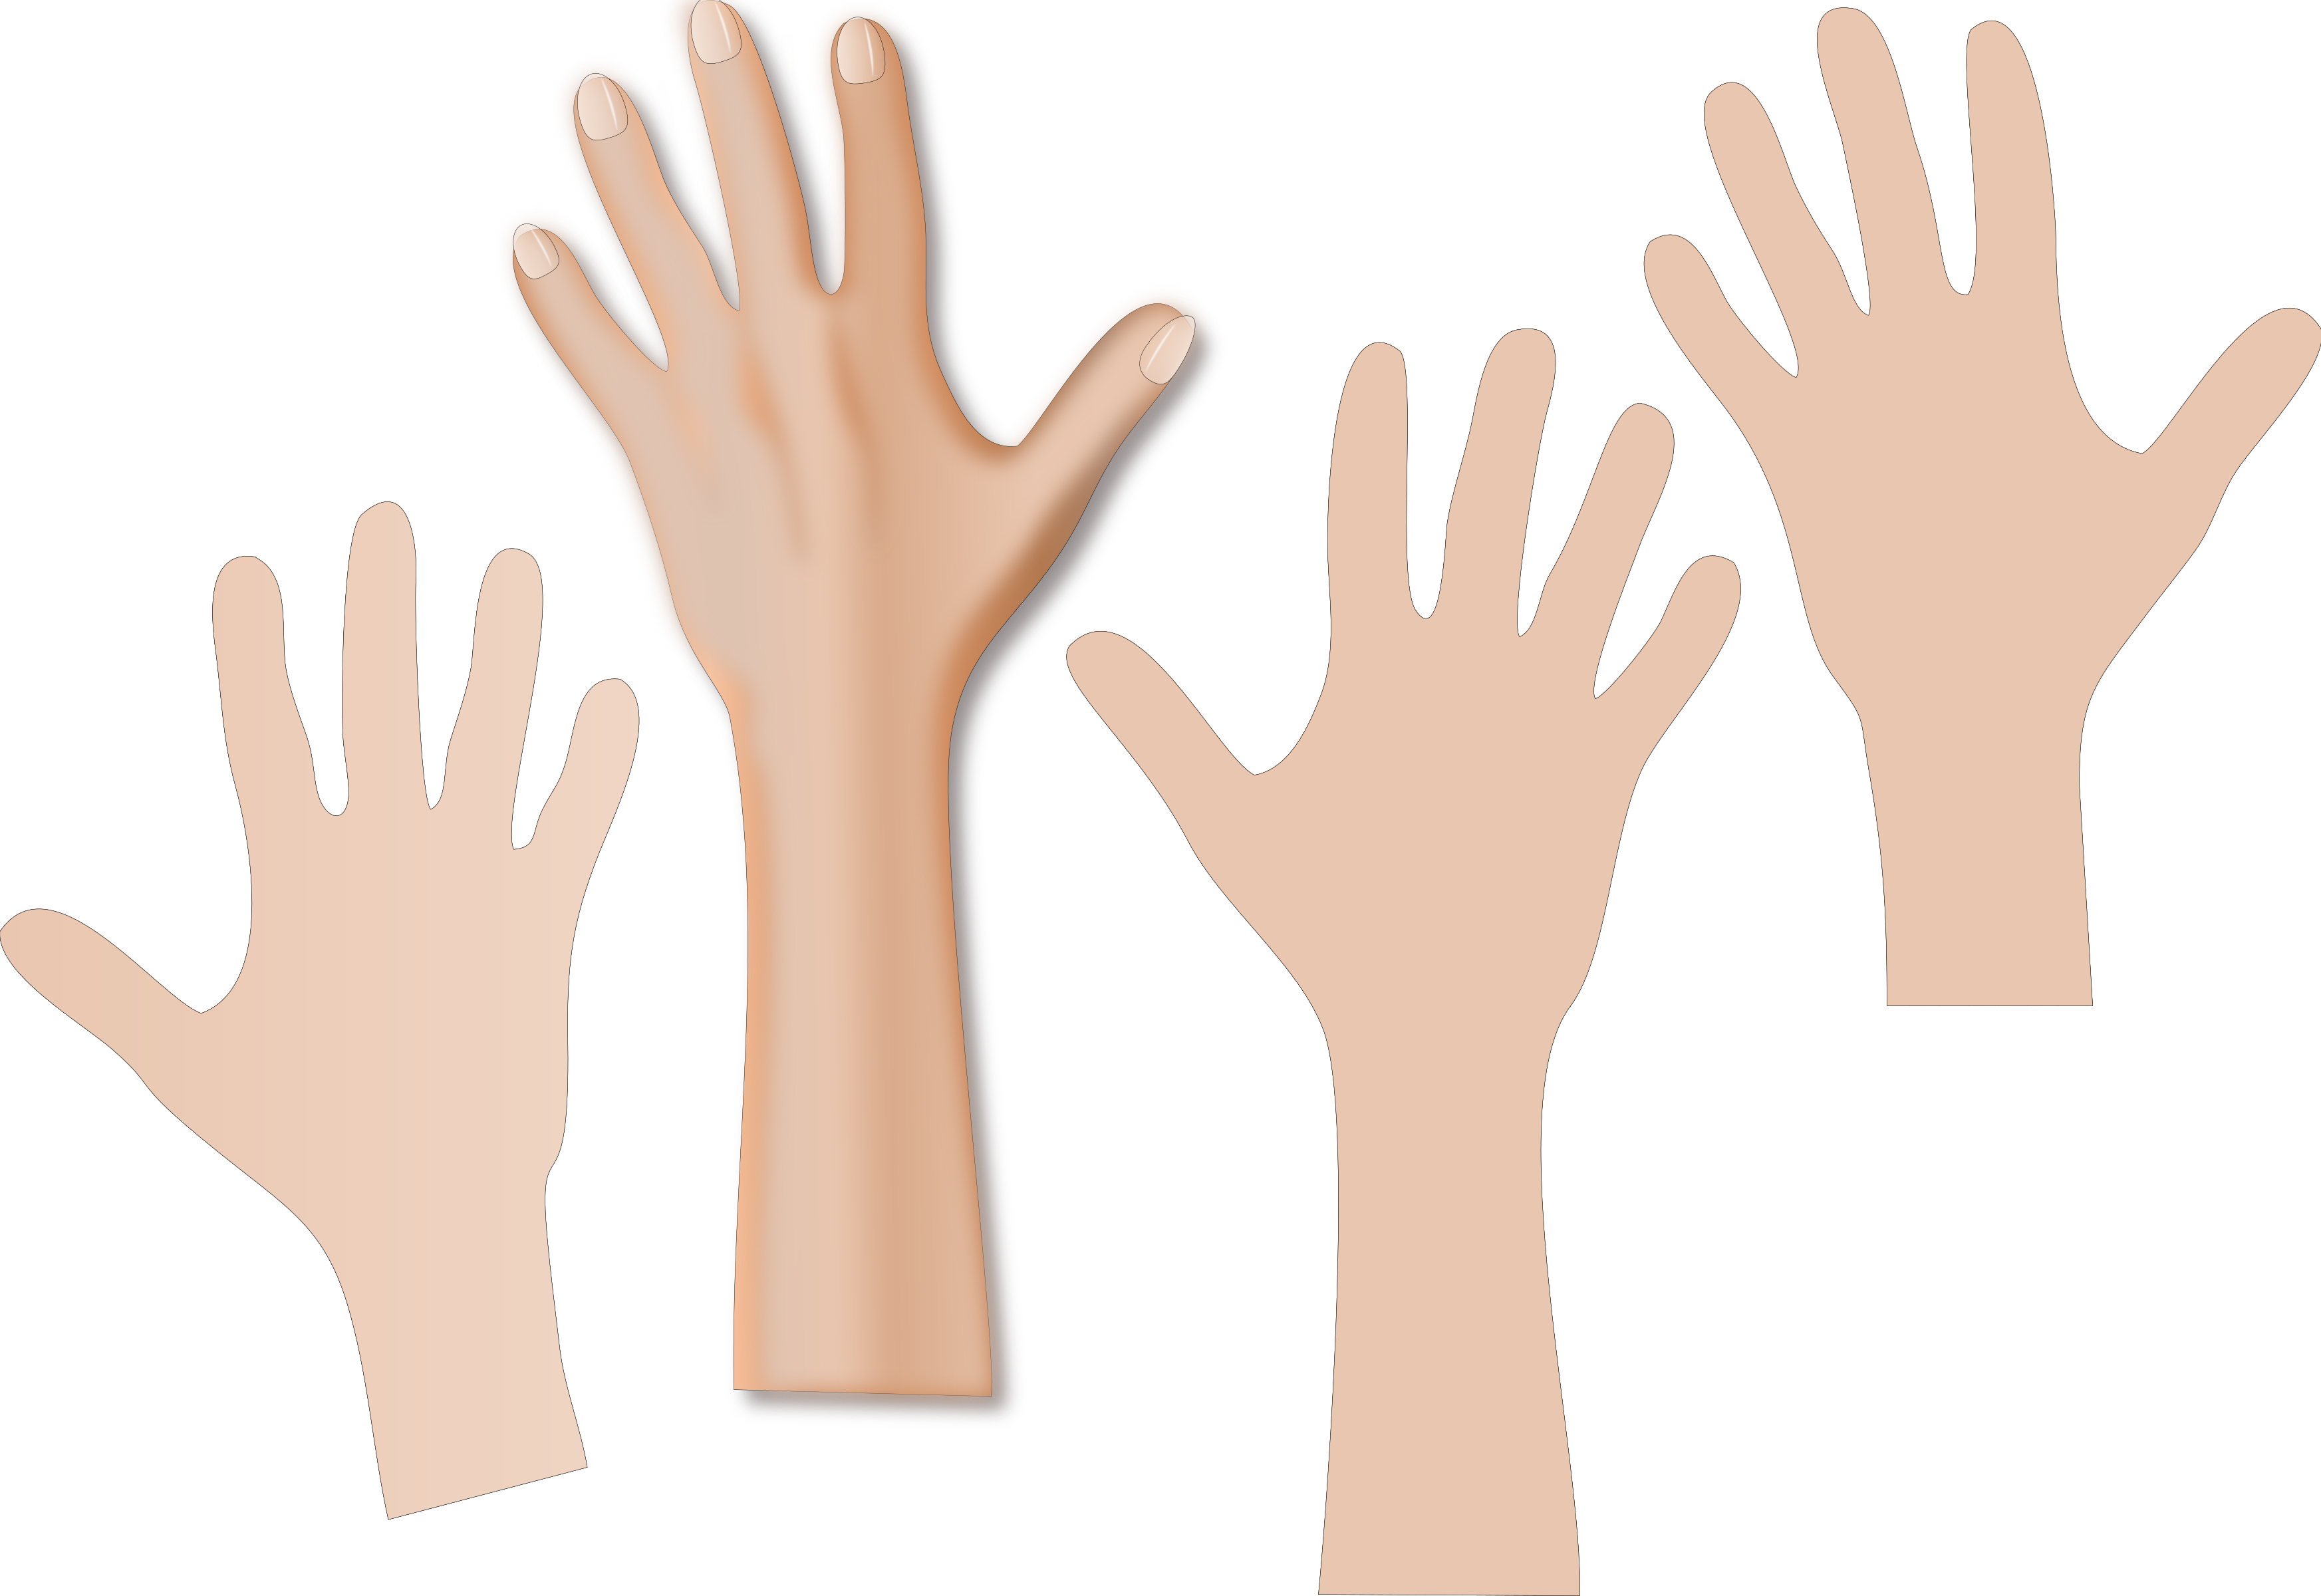 jpg library library Hands reaching with panda. Skin clipart.